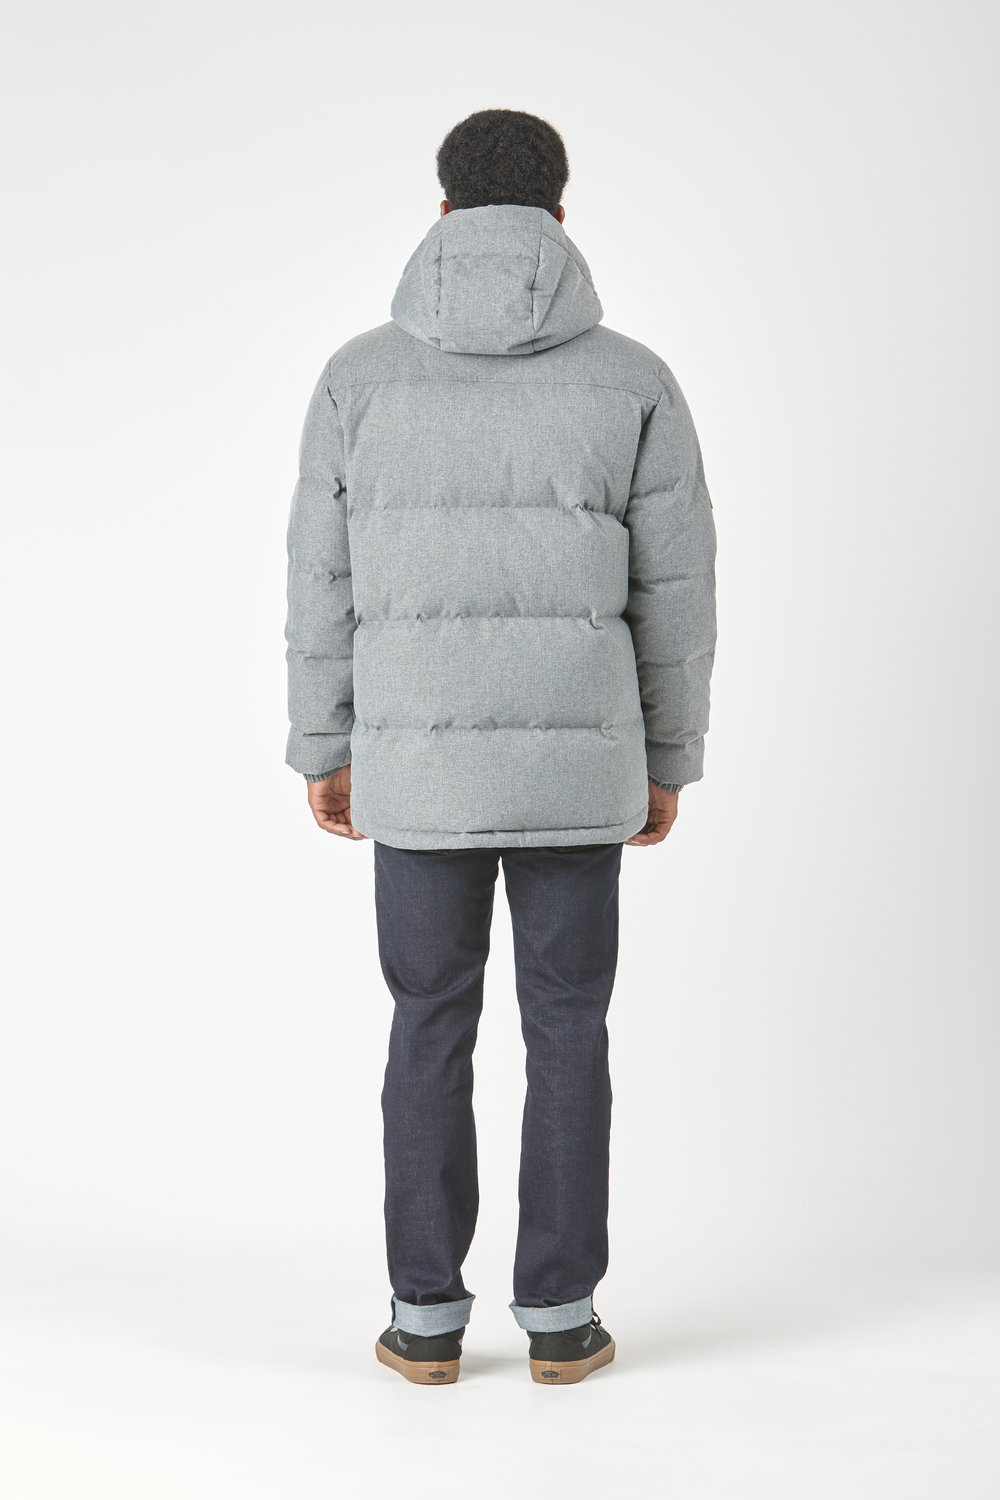 Huffer_OW-17_M-Classic-Down-Jacket_Grey-03.jpg